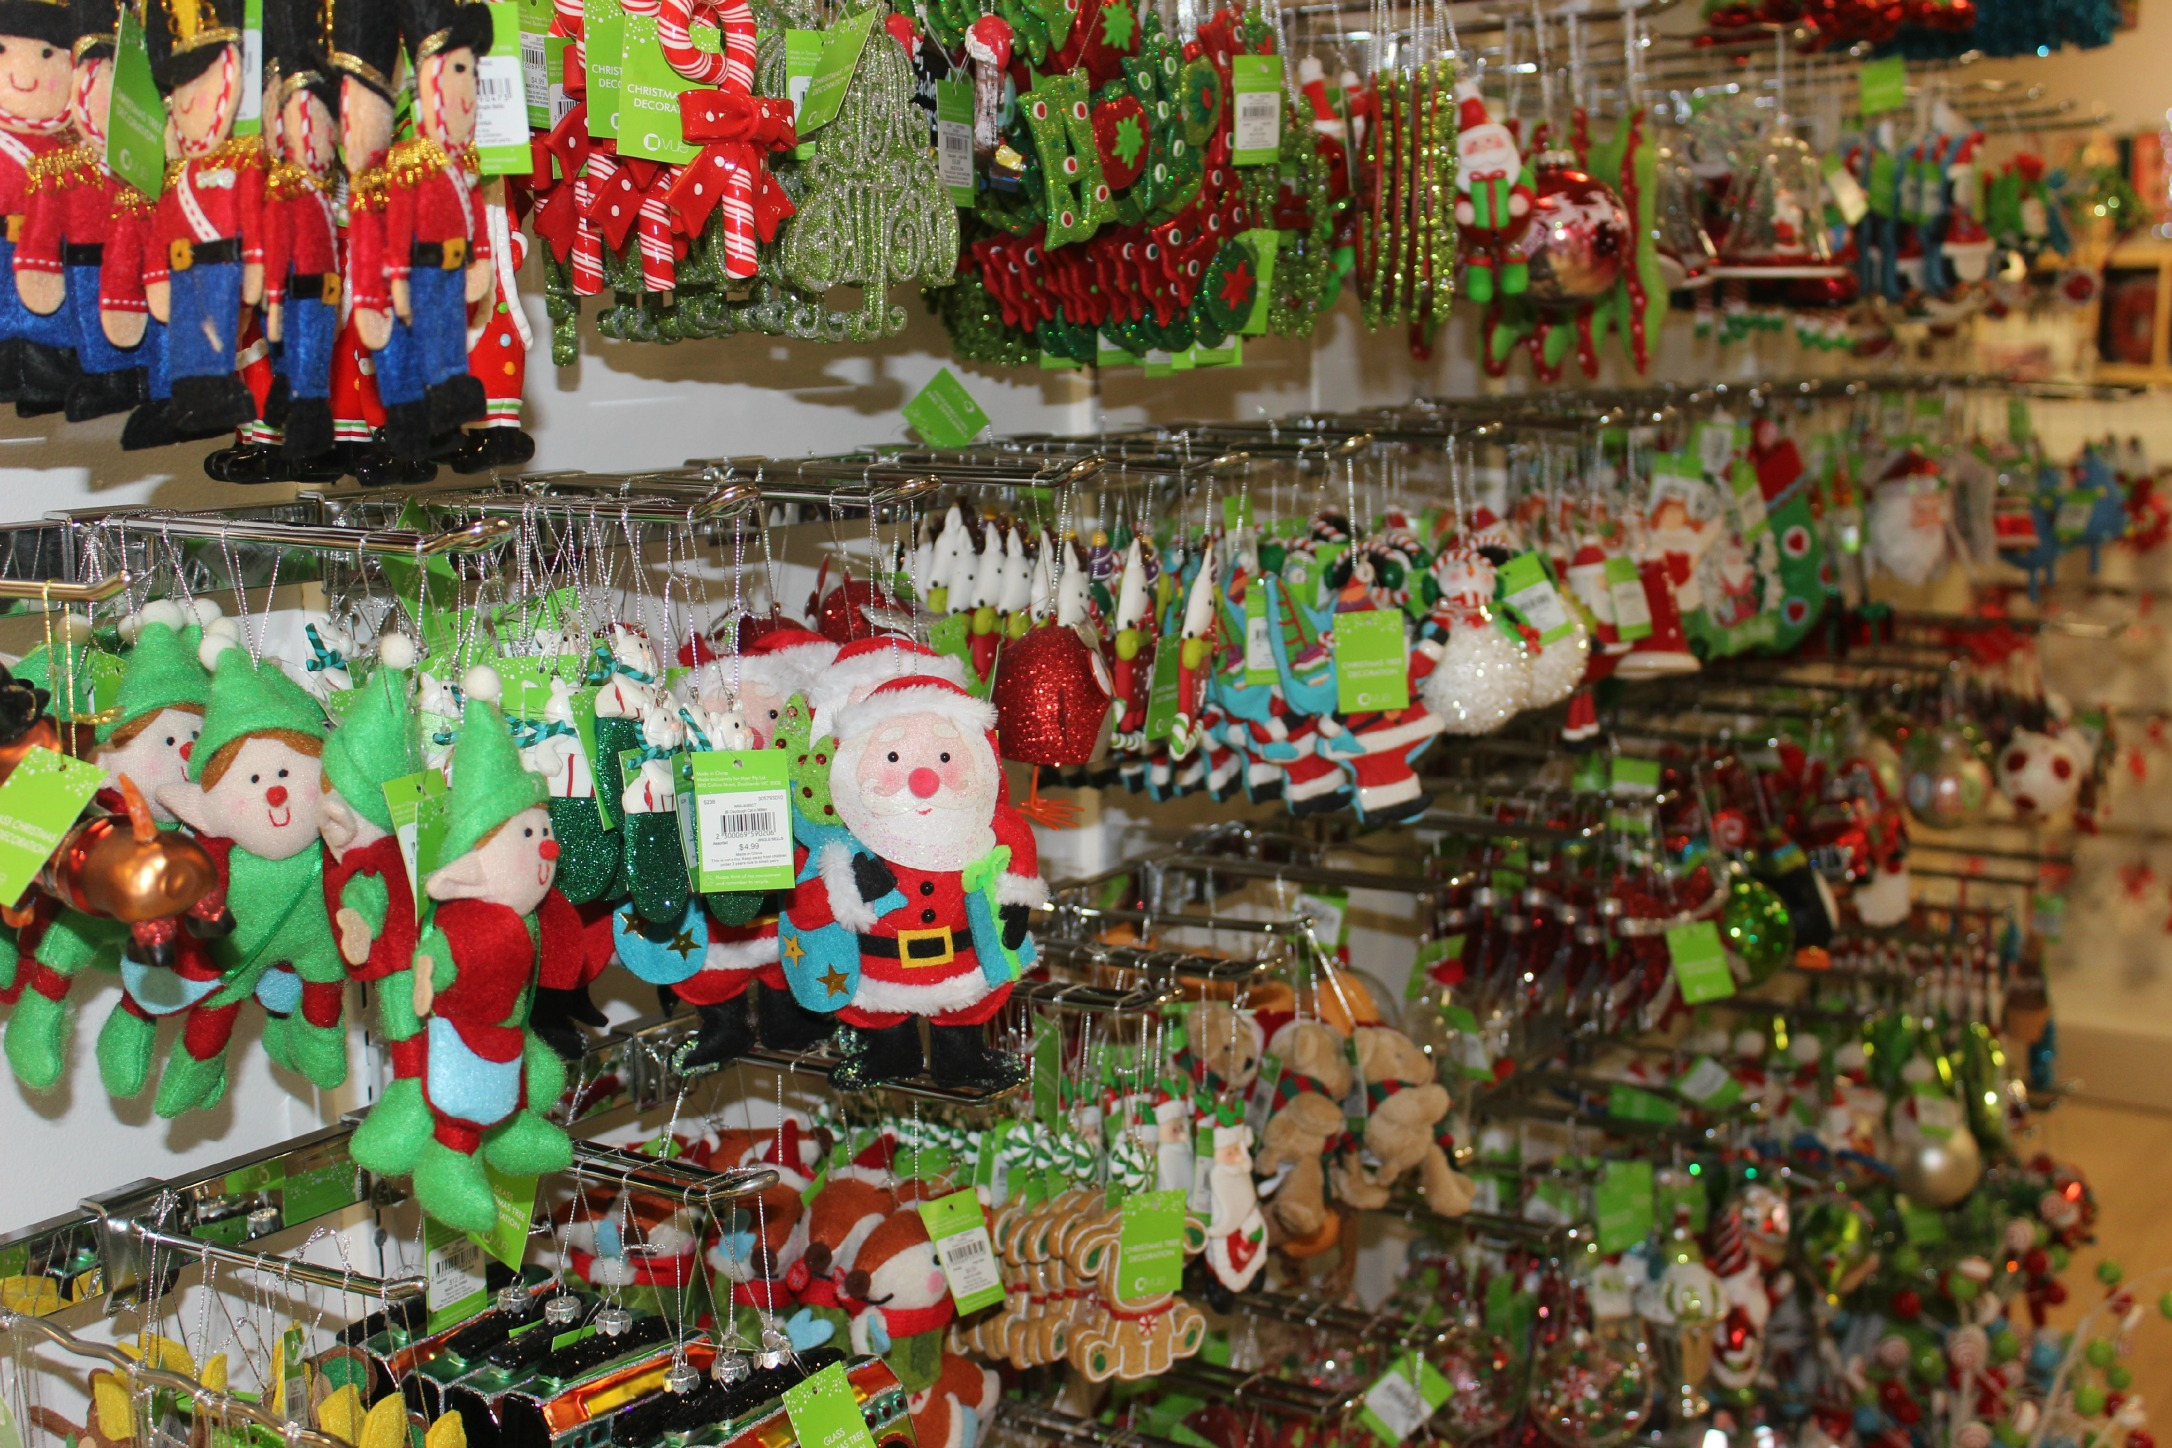 Christmas Decorations Myer : Creating childhood memories this holiday season at myer